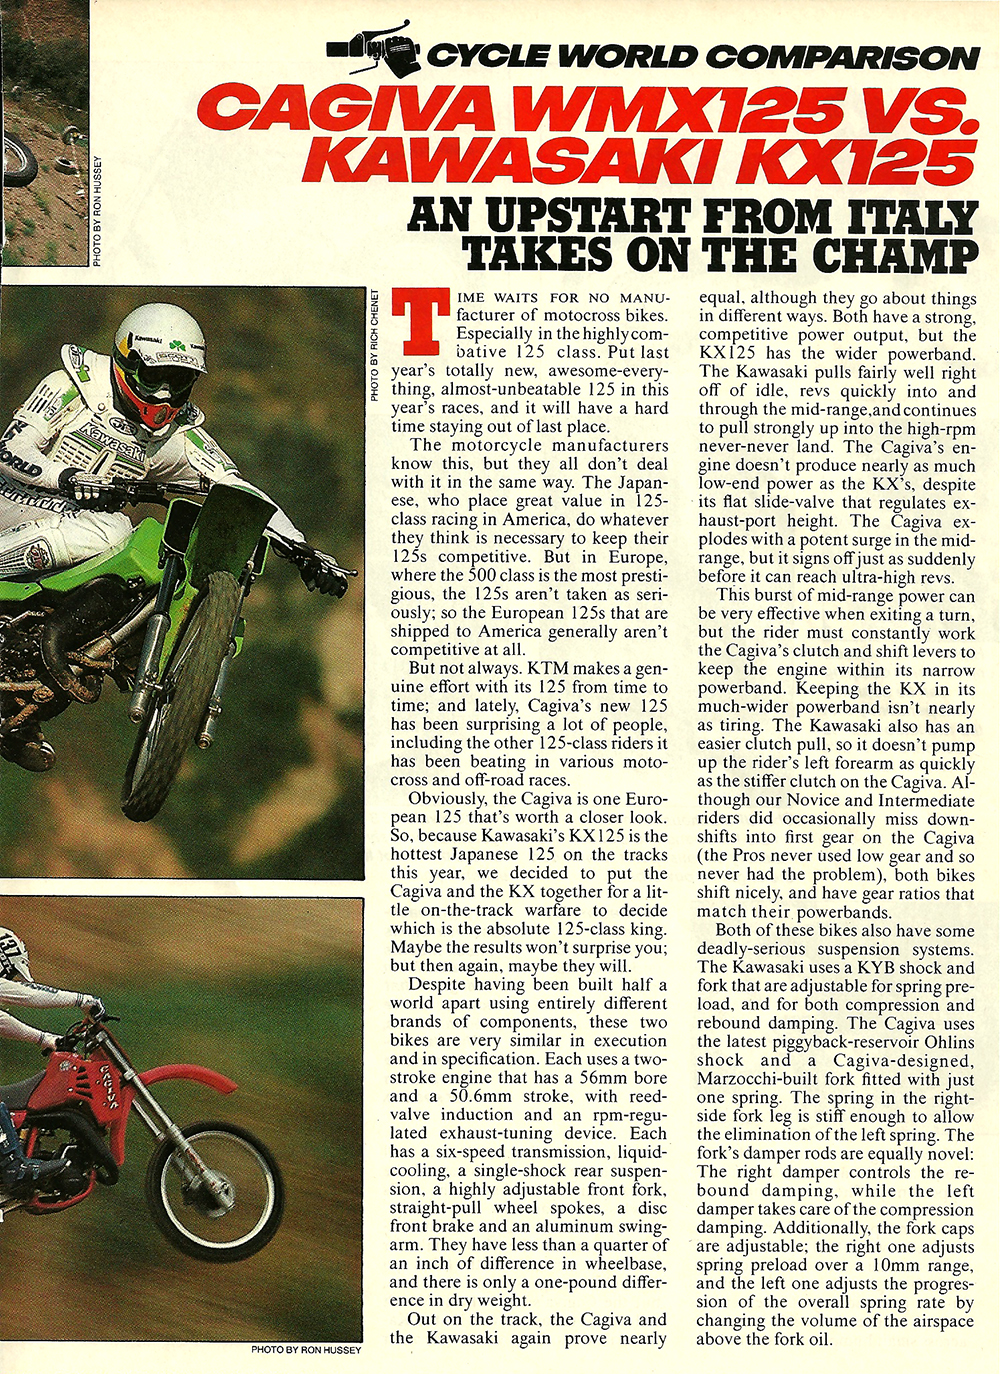 1985 Cagiva wmx125 vs Kawasaki kx125 road test 02.jpg